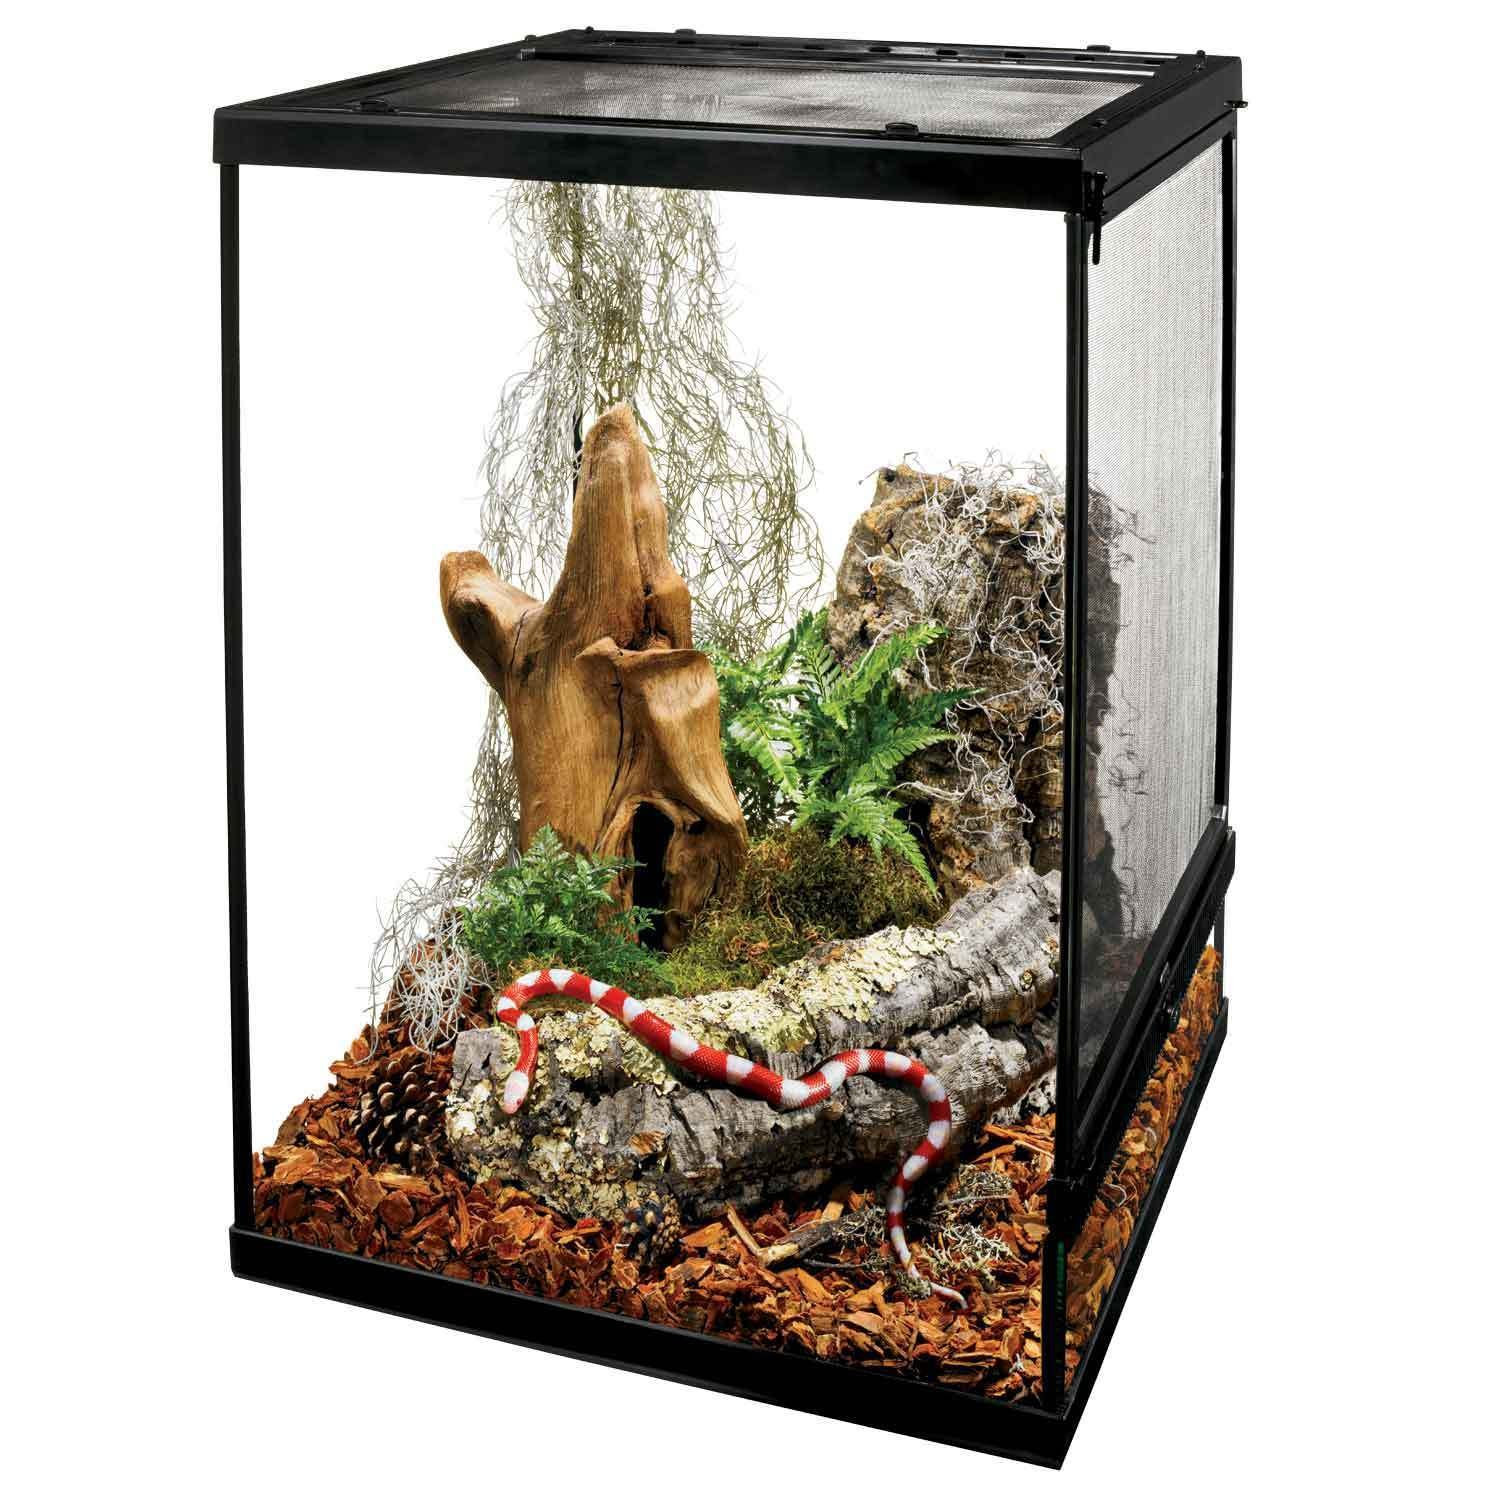 Zilla FLX Critter Cage Extra Large Glass Terrarium Tank New